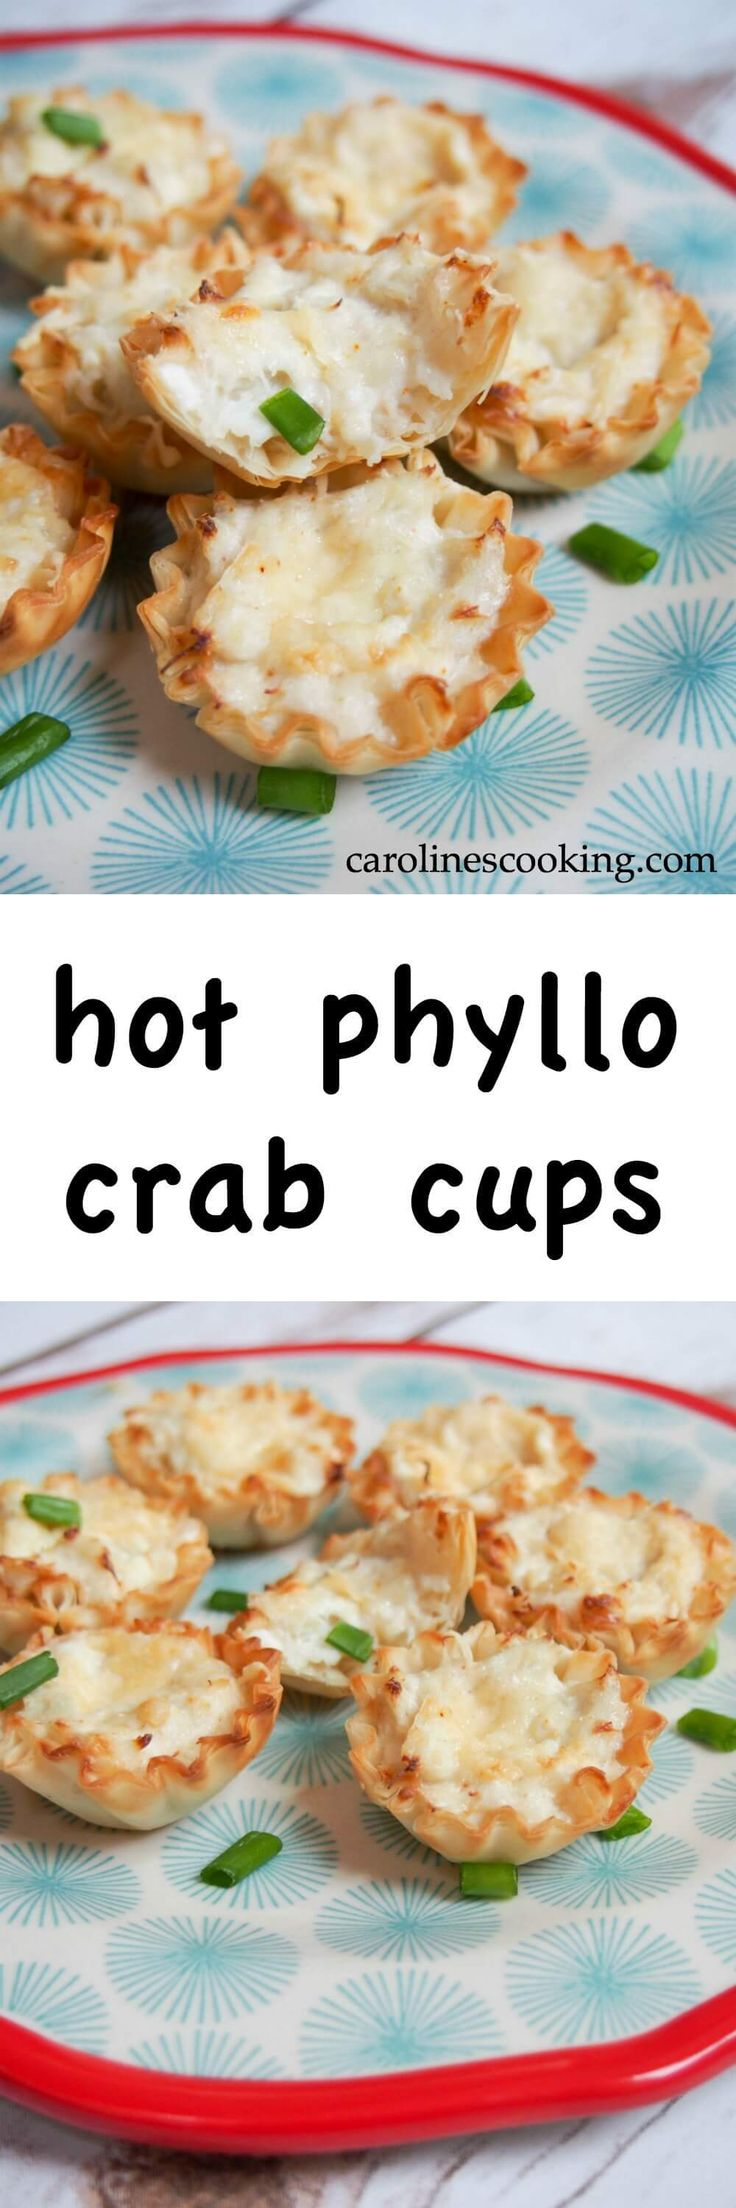 Forget about fighting over the dips and chips, these hot phyllo crab cups are the perfect bite-sized appetizer with the flavors of hot crab dip. So easy to make, so delicious.